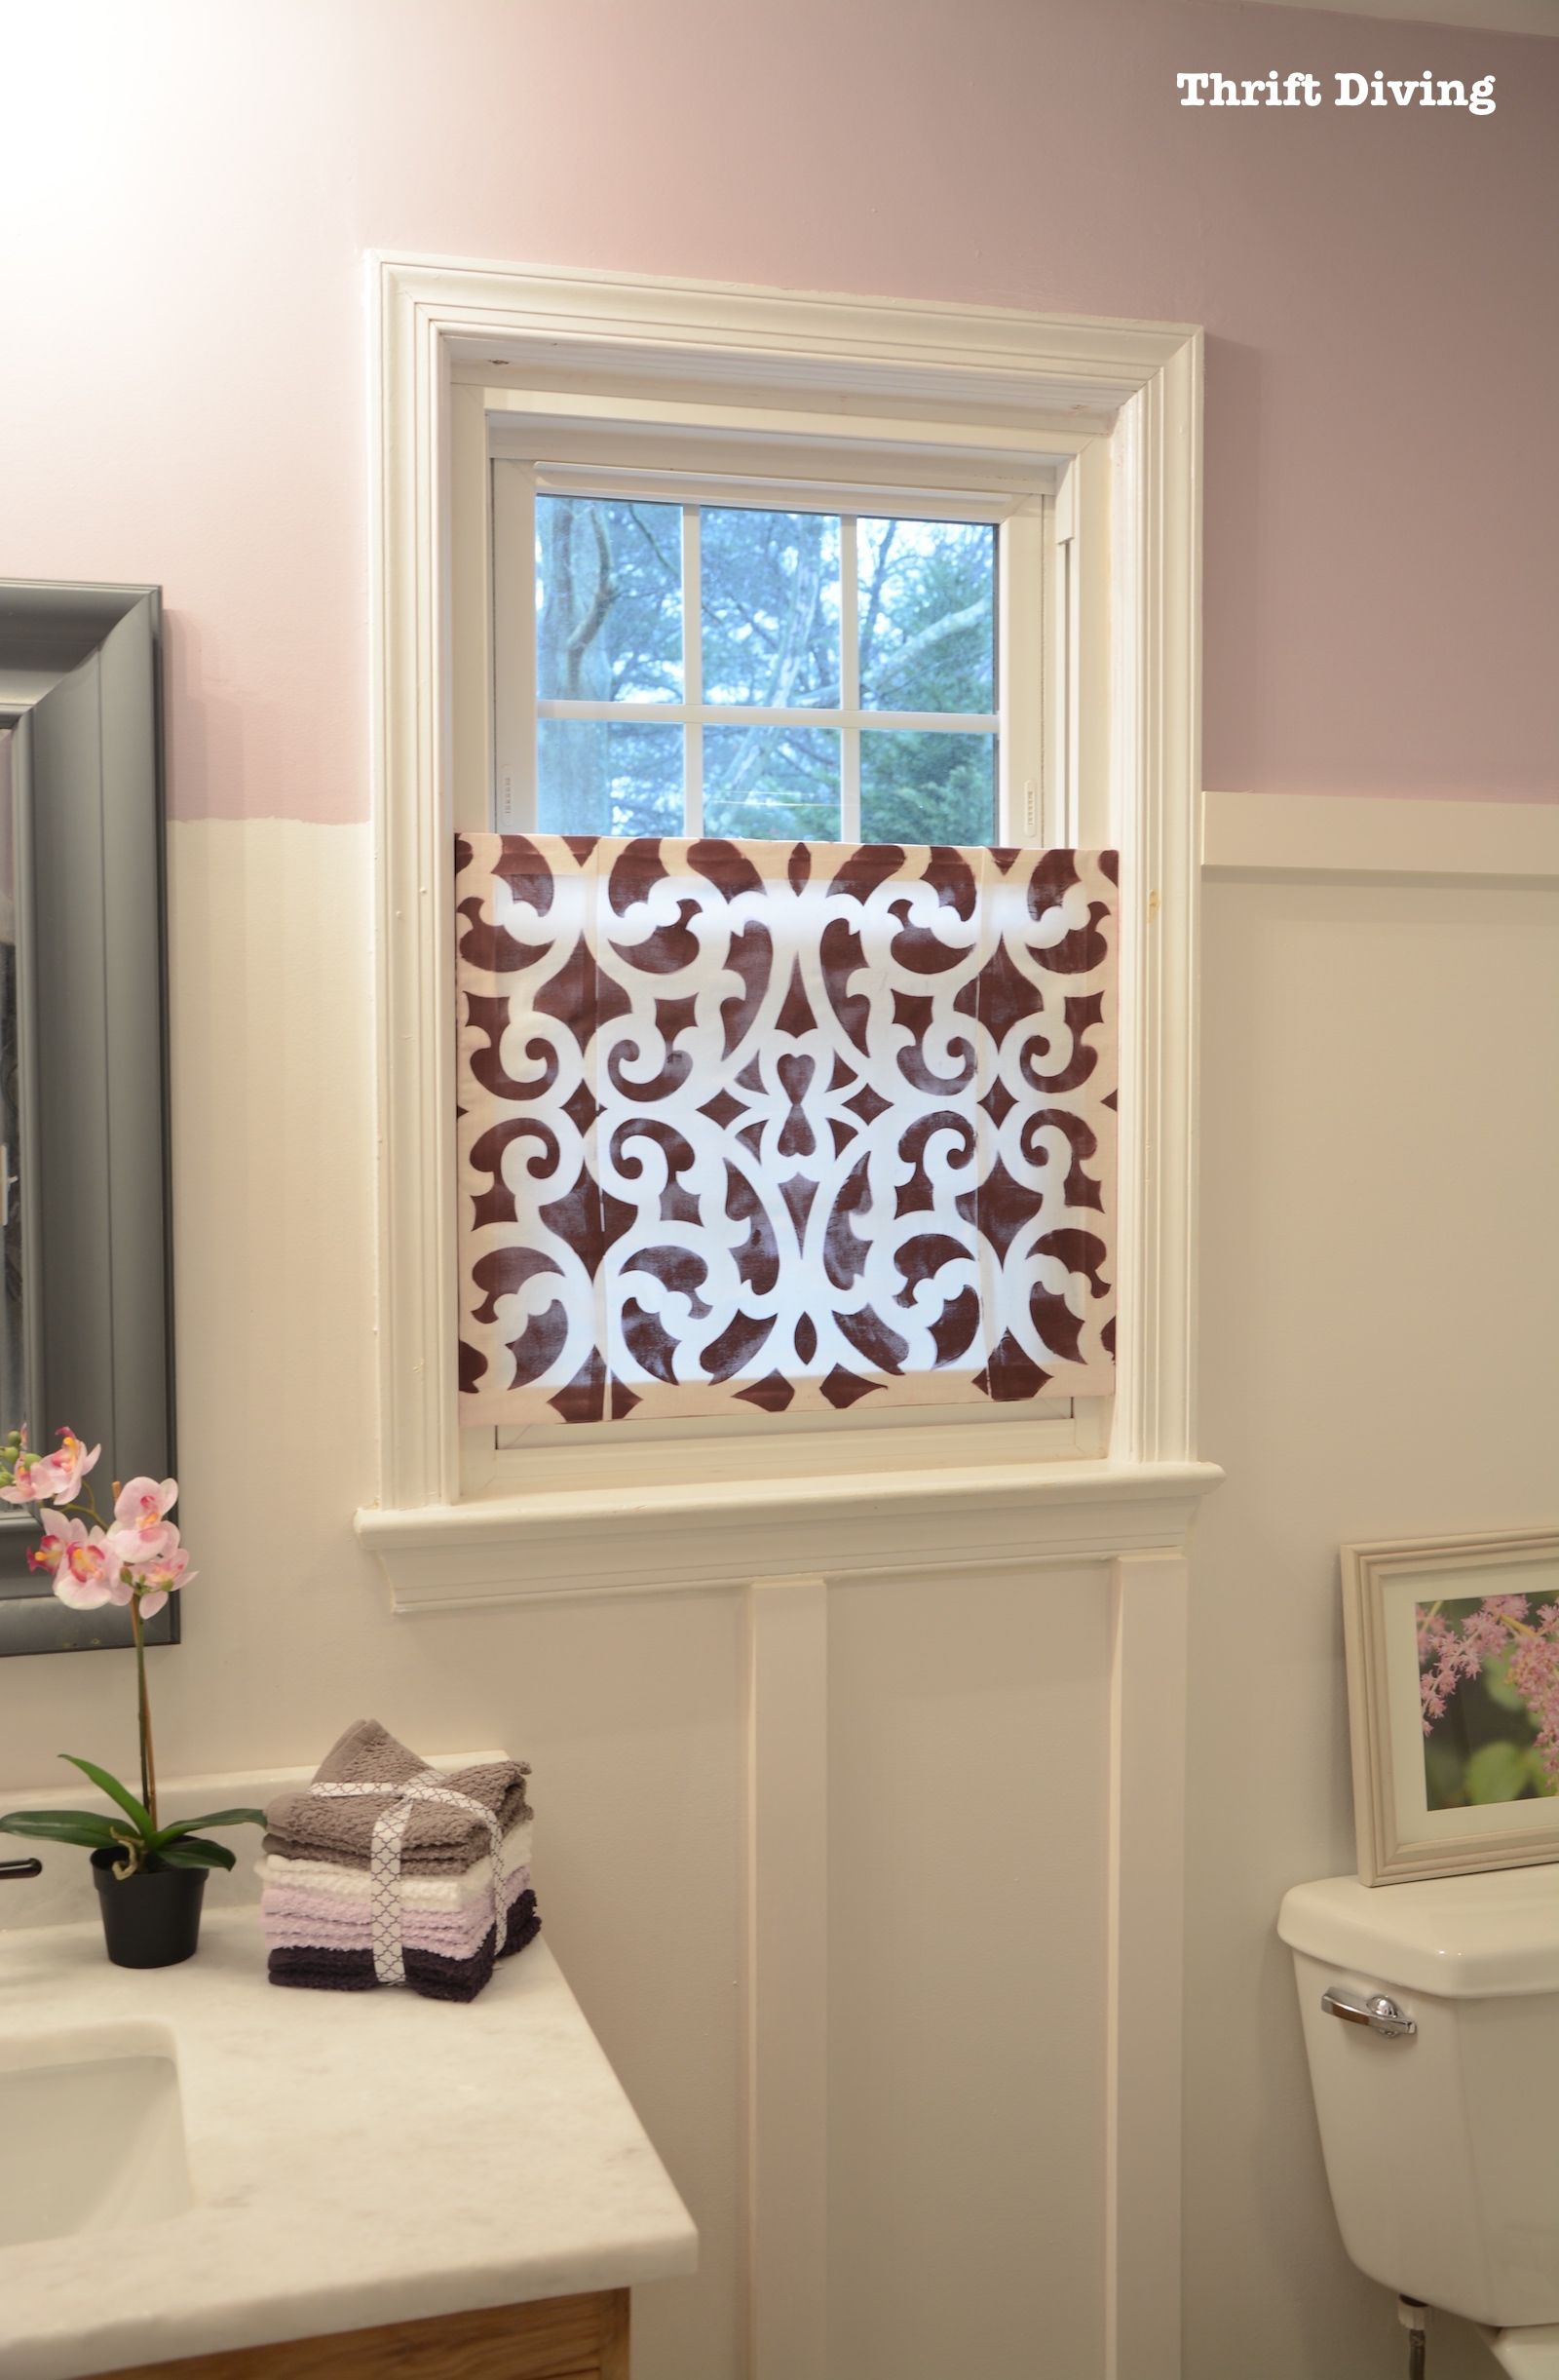 Lovely bathroom window treatment ideas bathroom ideas designs blograquelamaral Bathroom valances for windows